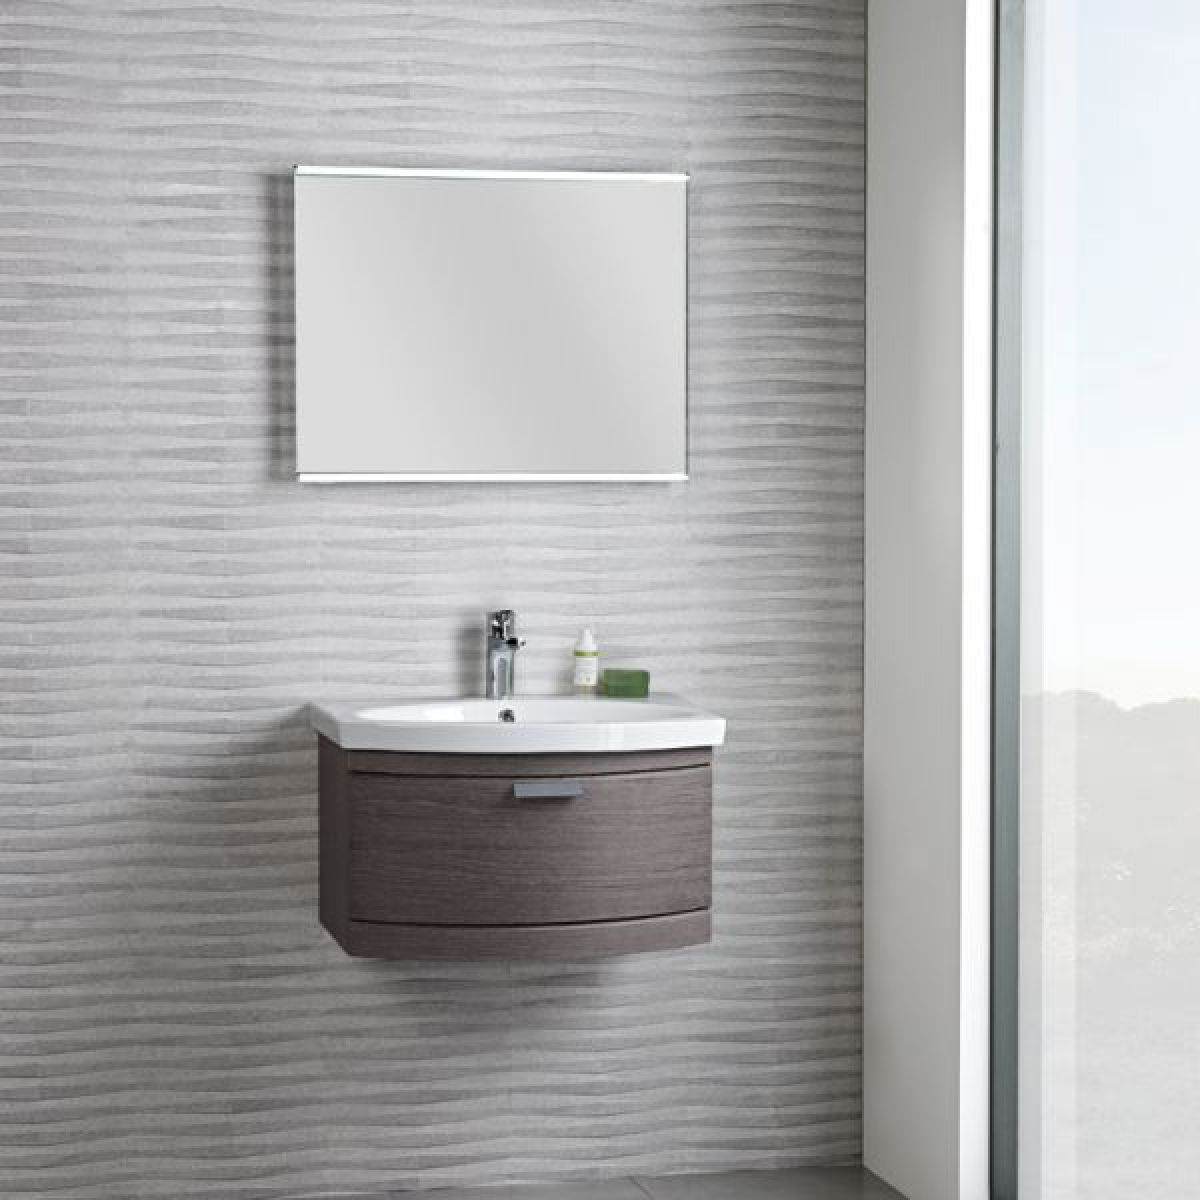 Tavistock Tempo 650 Dark Java Wall Mounted Unit - Lifestyle